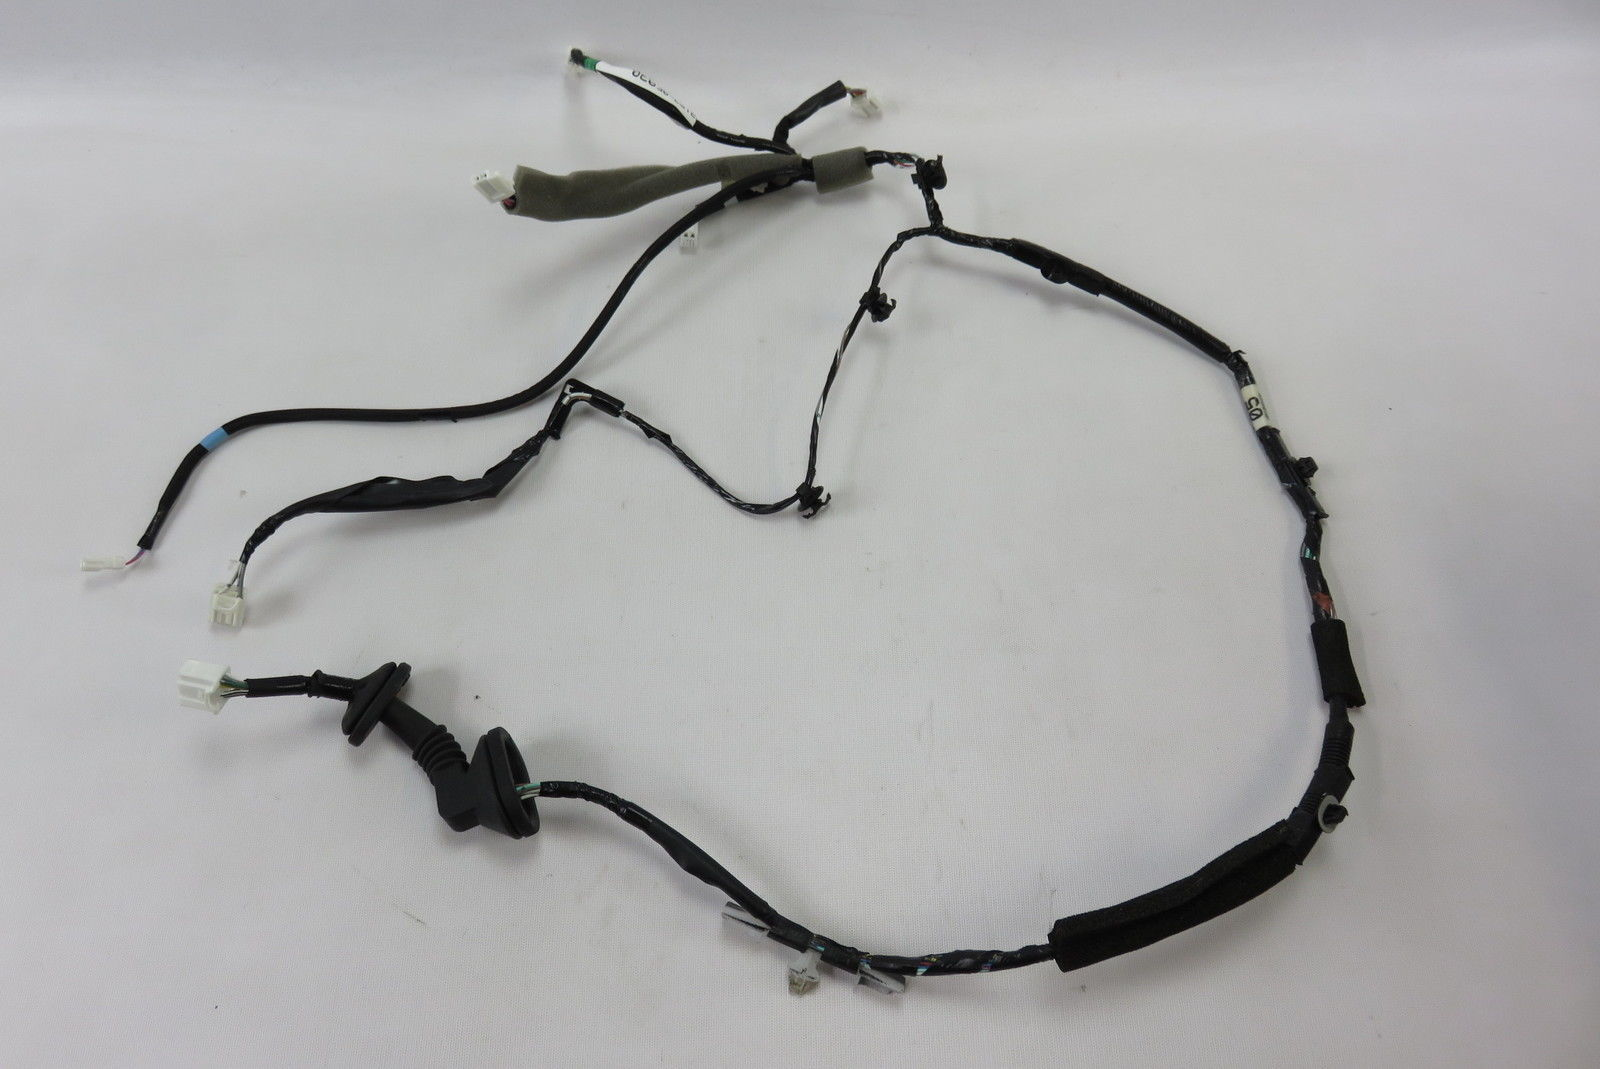 2013 13 Lexus RX350 WIRE, REAR DOOR, No.1 wiring harness 82153-0e030 Lexus Rx Wiring Harness on lexus spark plugs, lexus speedometer, lexus suspension, lexus exhaust, lexus headlights, lexus wheels, lexus instrument cluster, lexus struts, lexus tires, lexus alternator harness, lexus grille,